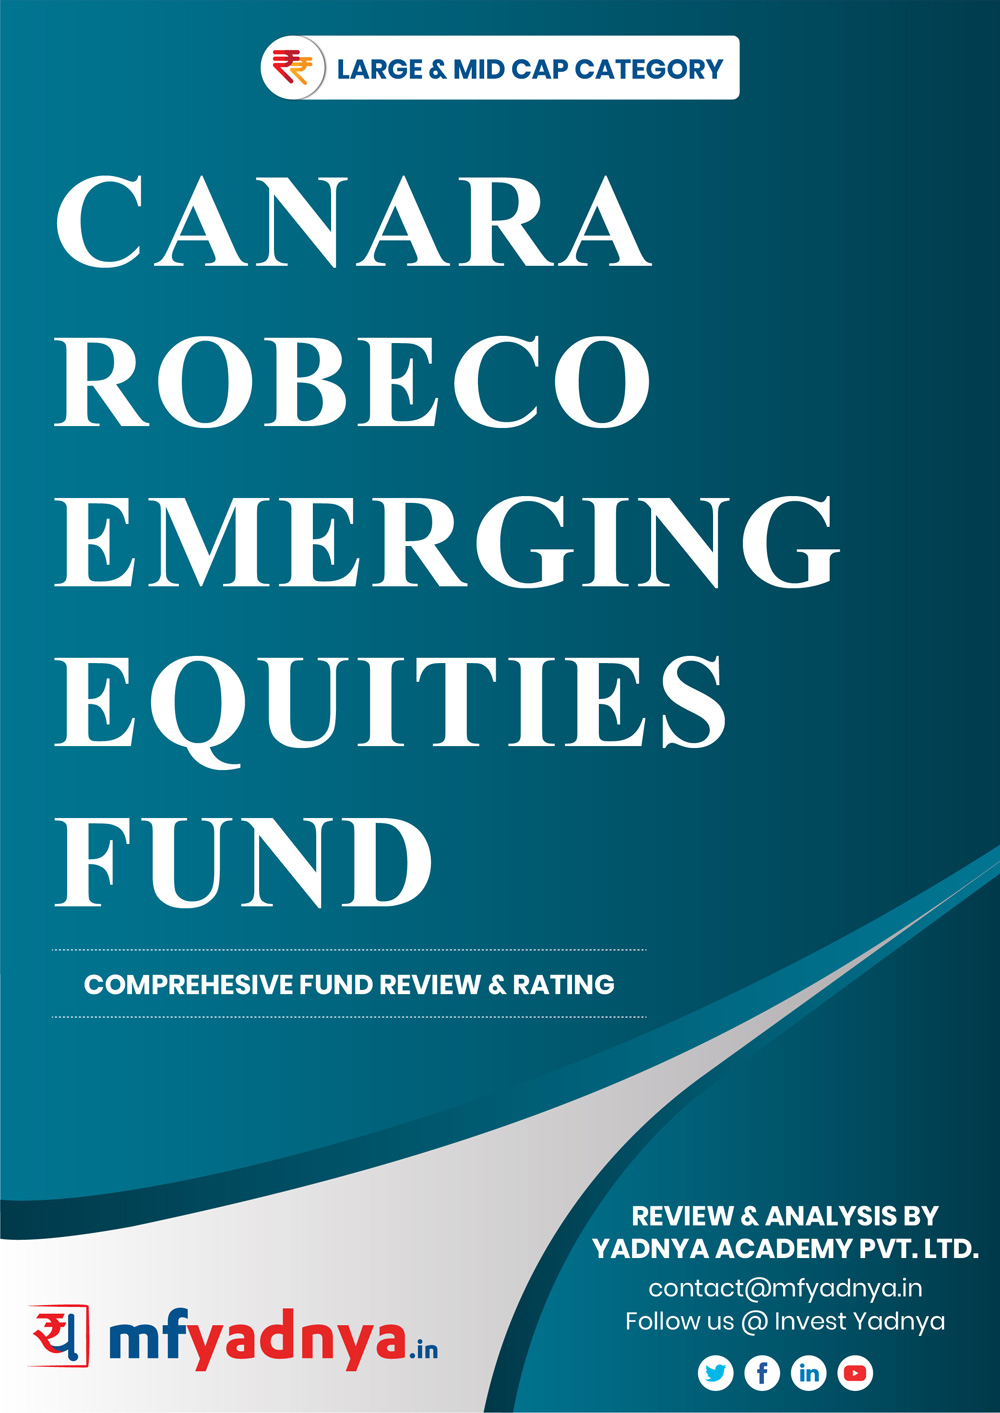 This e-book offers a comprehensive mutual fund review of Canara Robeco Emerging Equities Fund for large & mid-cap category. It reviews the fund's return, ratio, allocation etc. ✔ Detailed Mutual Fund Analysis ✔ Latest Research Reports